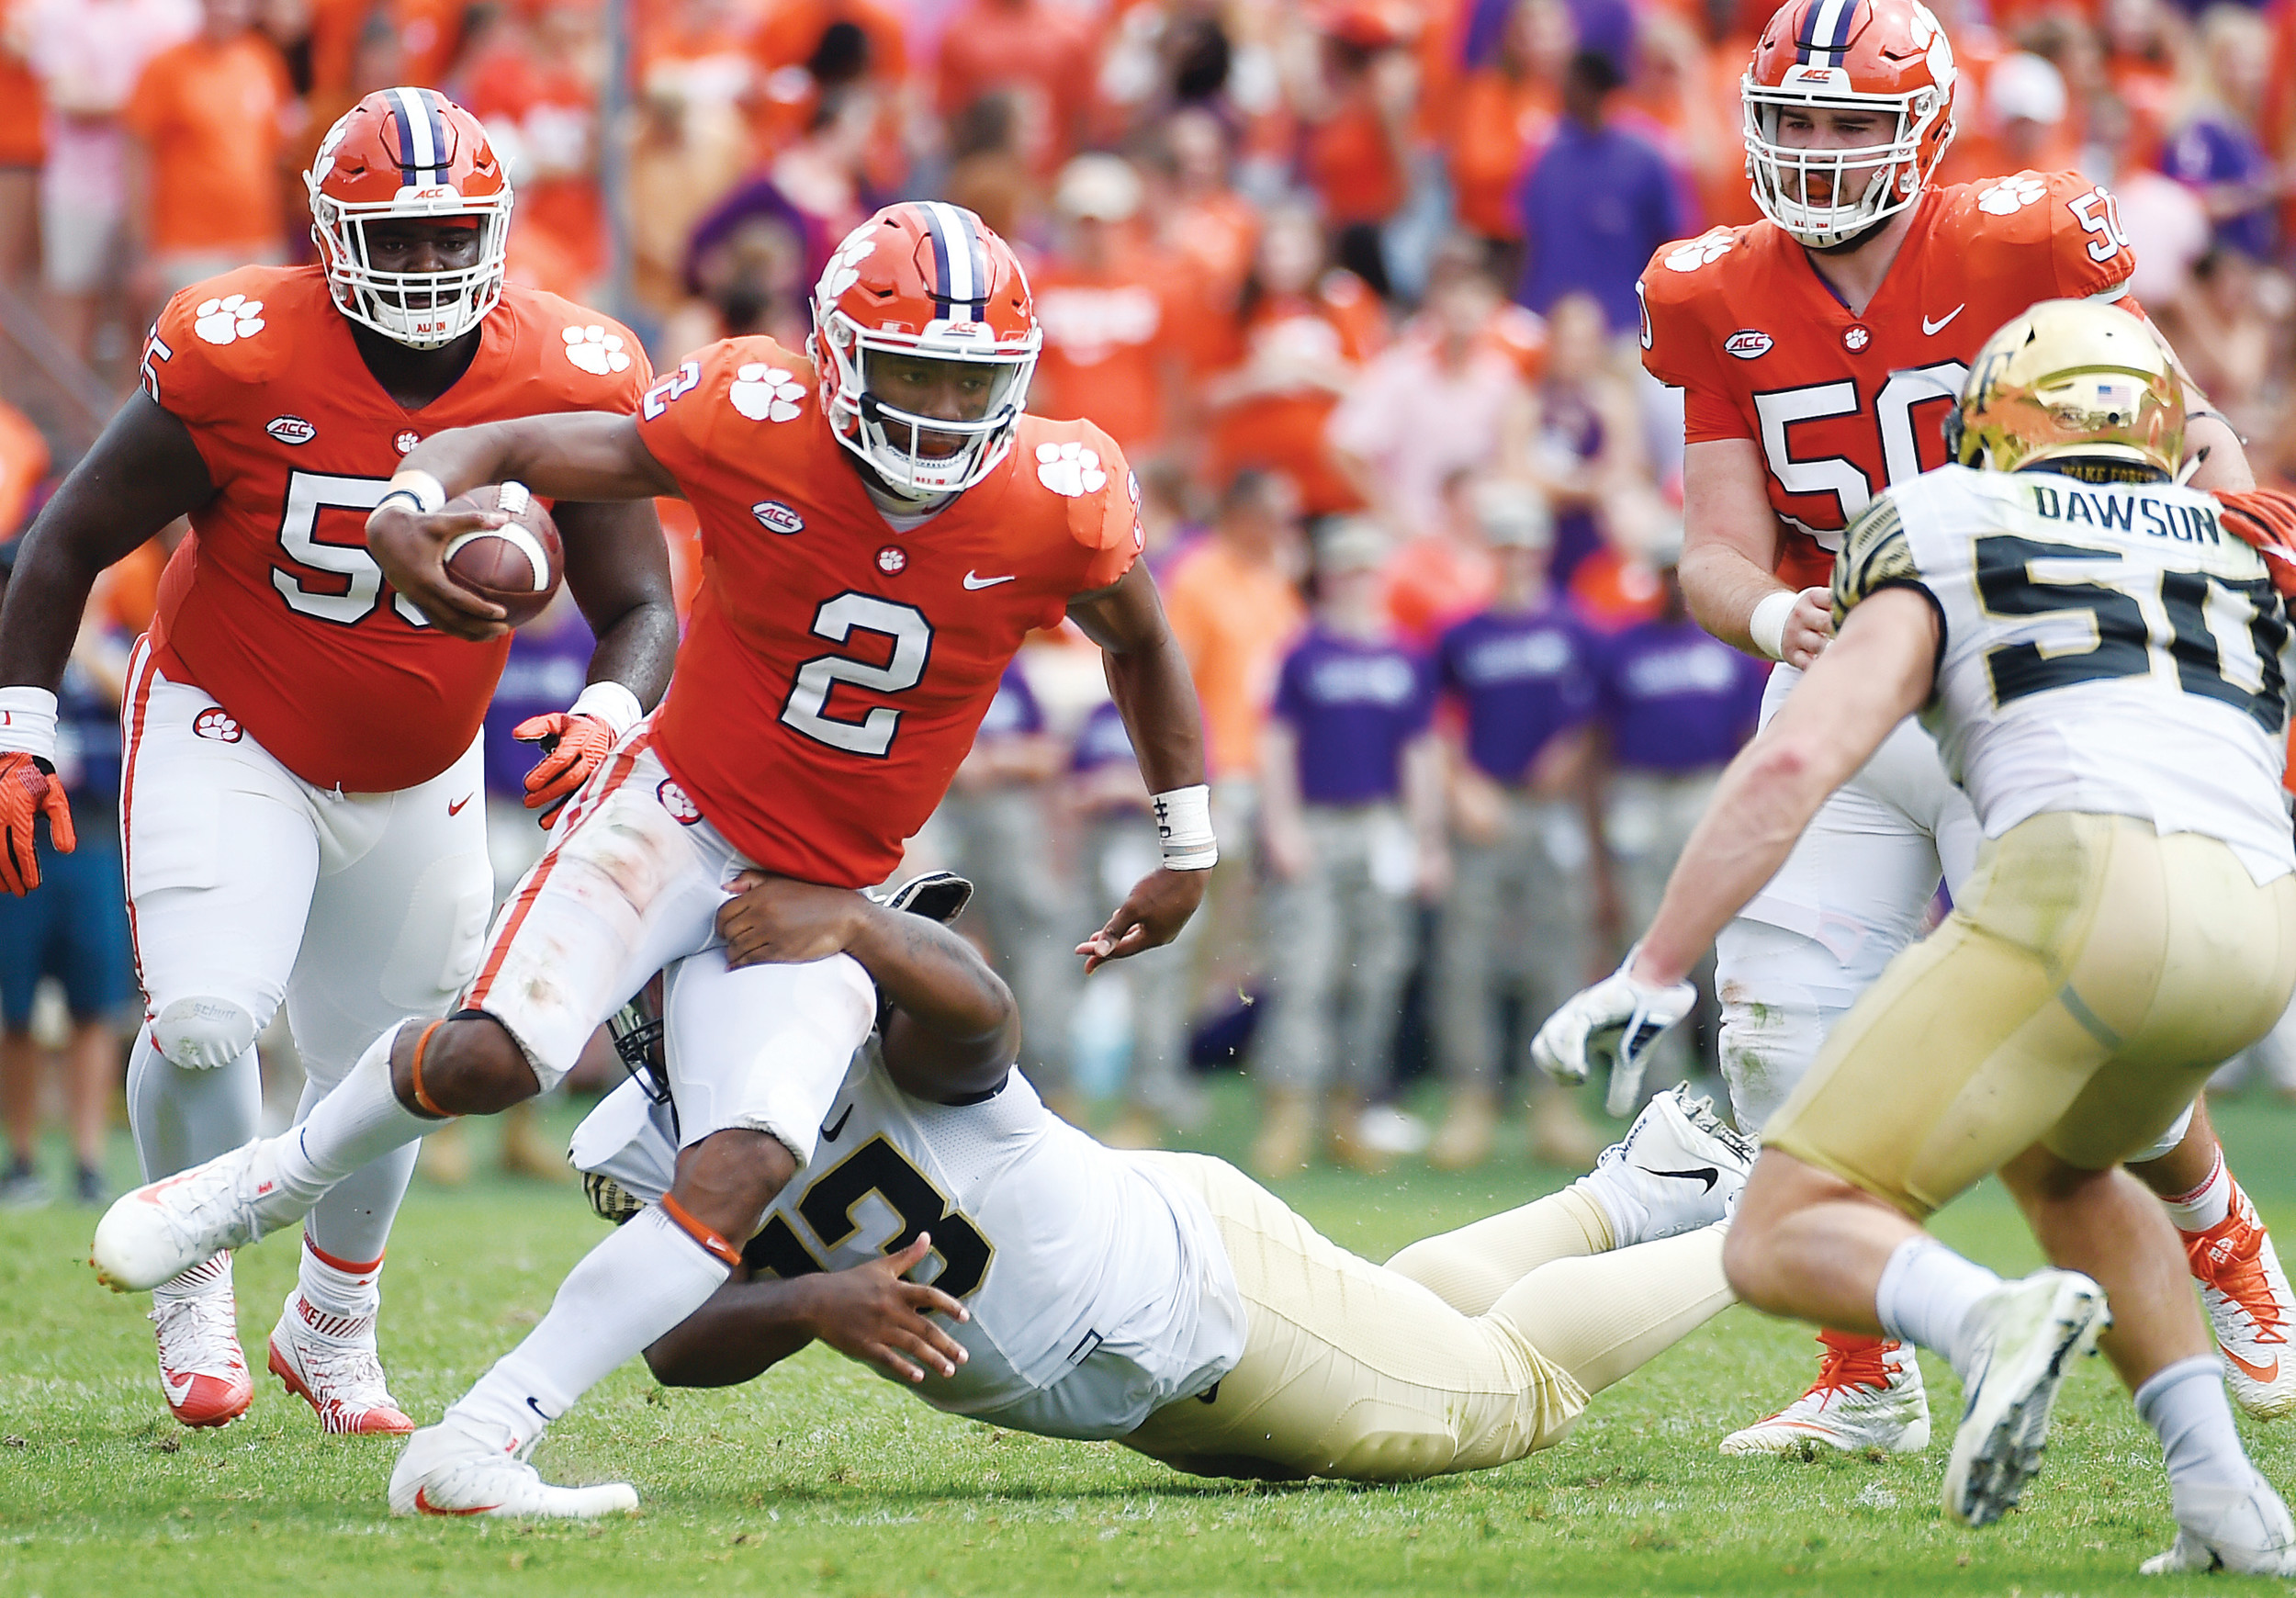 Clemson quarterback Kelly Bryant (2) evades Wake Forest defensive end Zeek Rodney (93) during the first half of the Tigers 28-14 victory on Saturday in Clemson. Bryant injured his ankle in the game and is questionable for Friday's game against Syracuse.